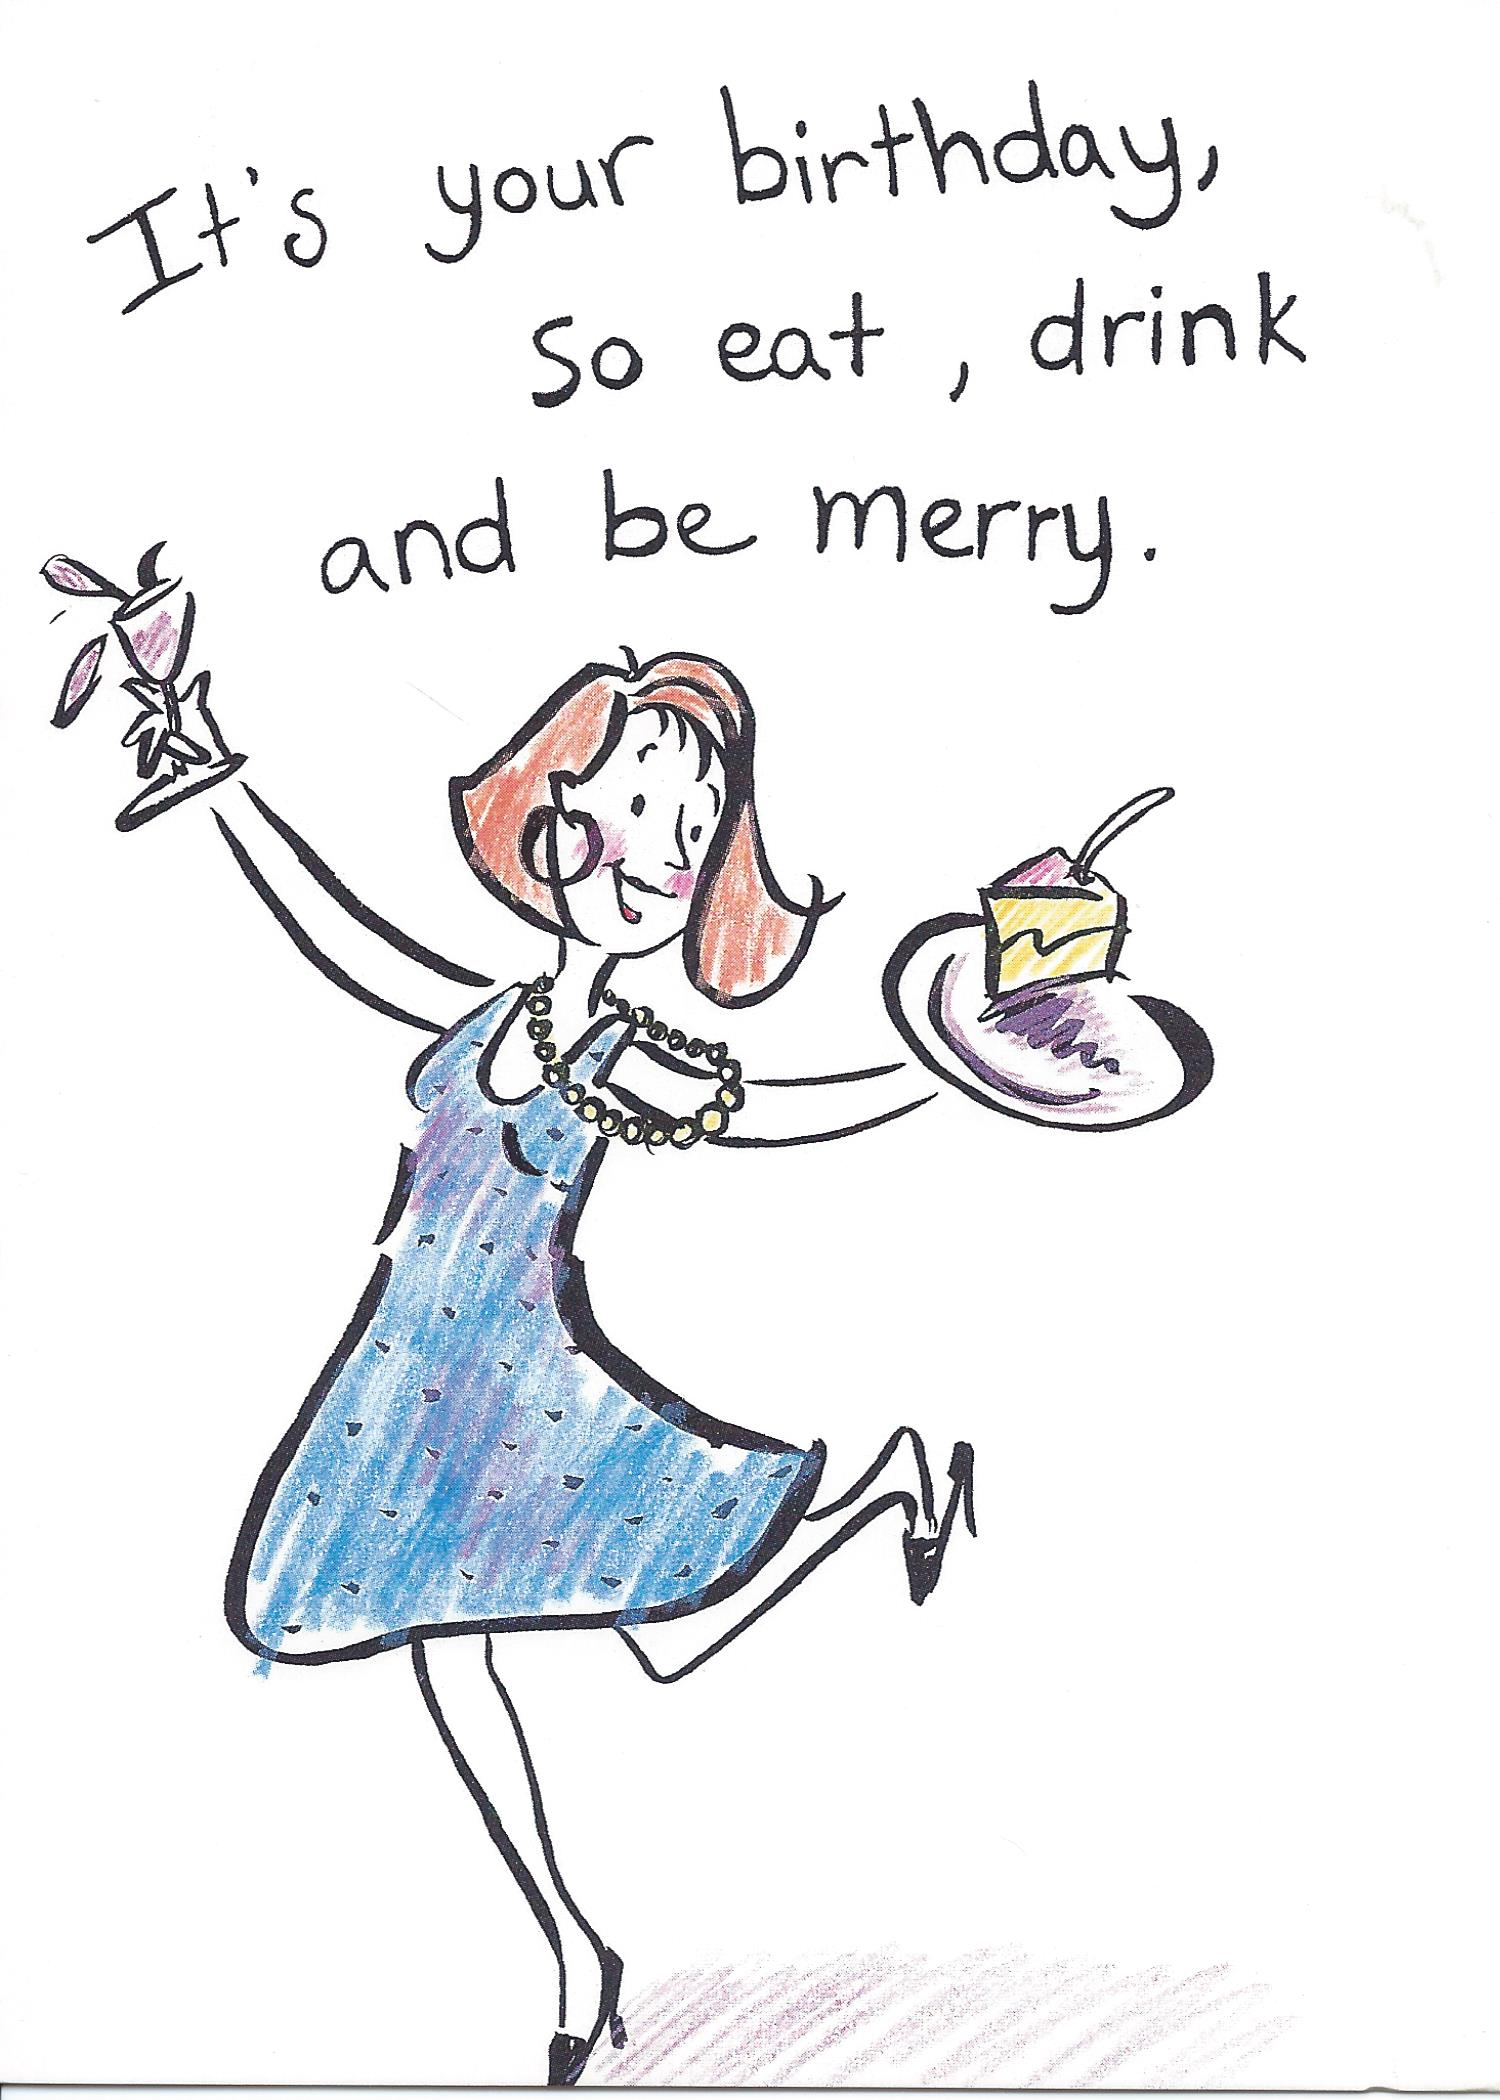 It's your birthday, so eat, drink, and be merry.